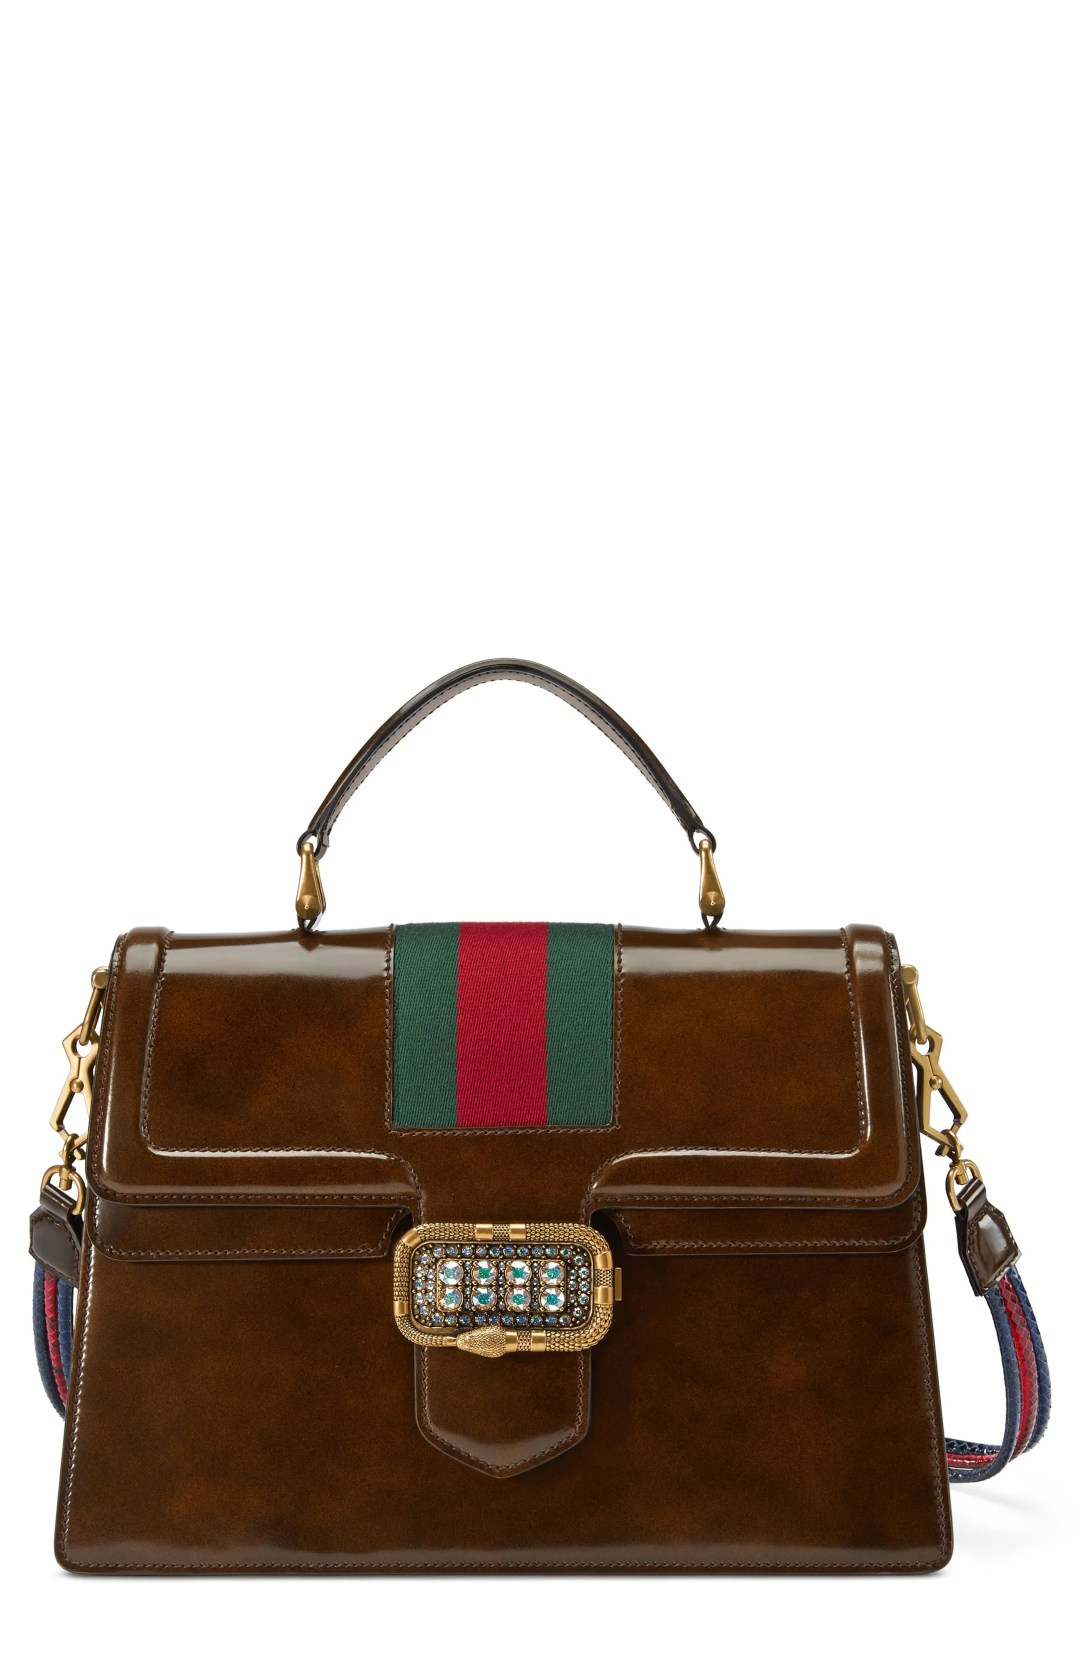 aa3e355aed47e FOR IMMEDIATE RELEASE: SHOP THE GUCCI BASEBALL COLLECTION AT ...